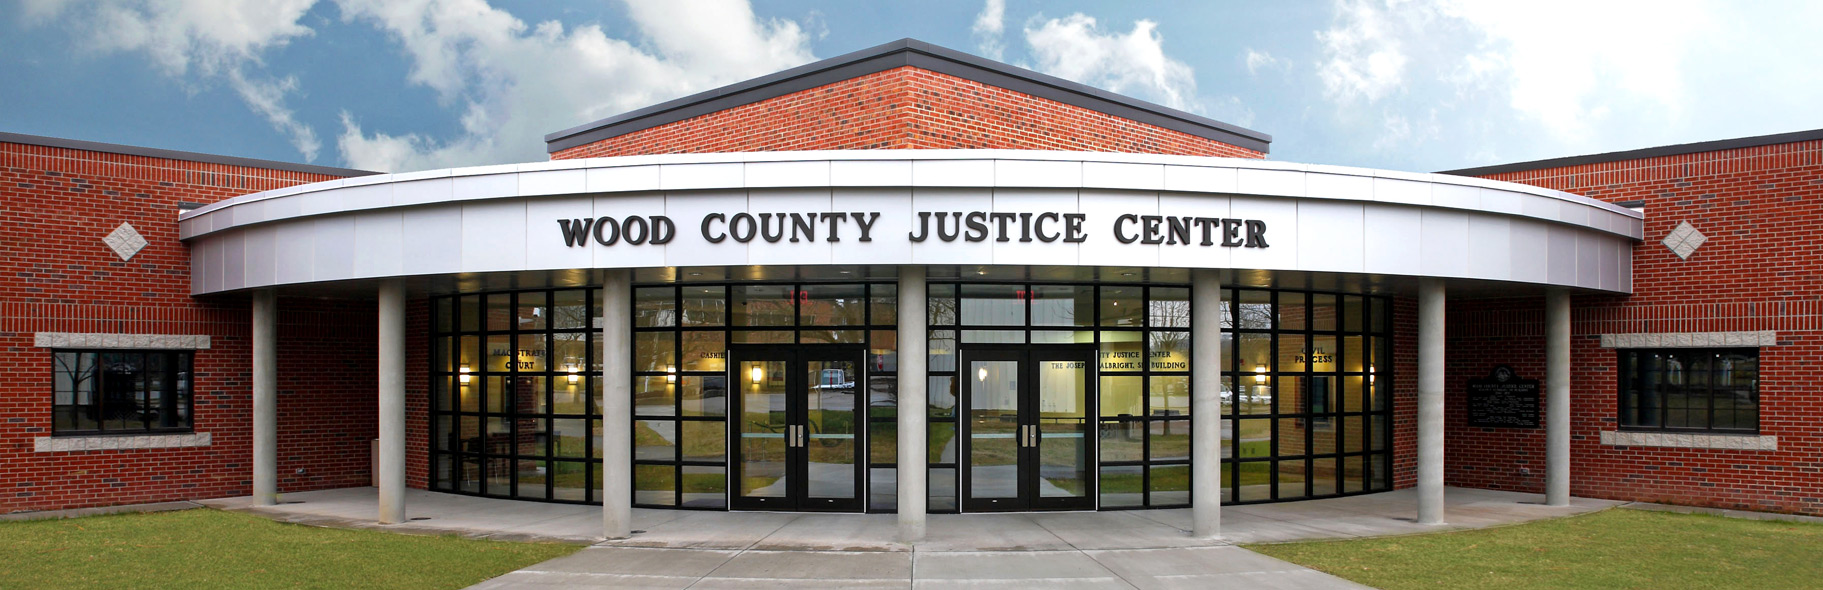 Wood County Justice Center